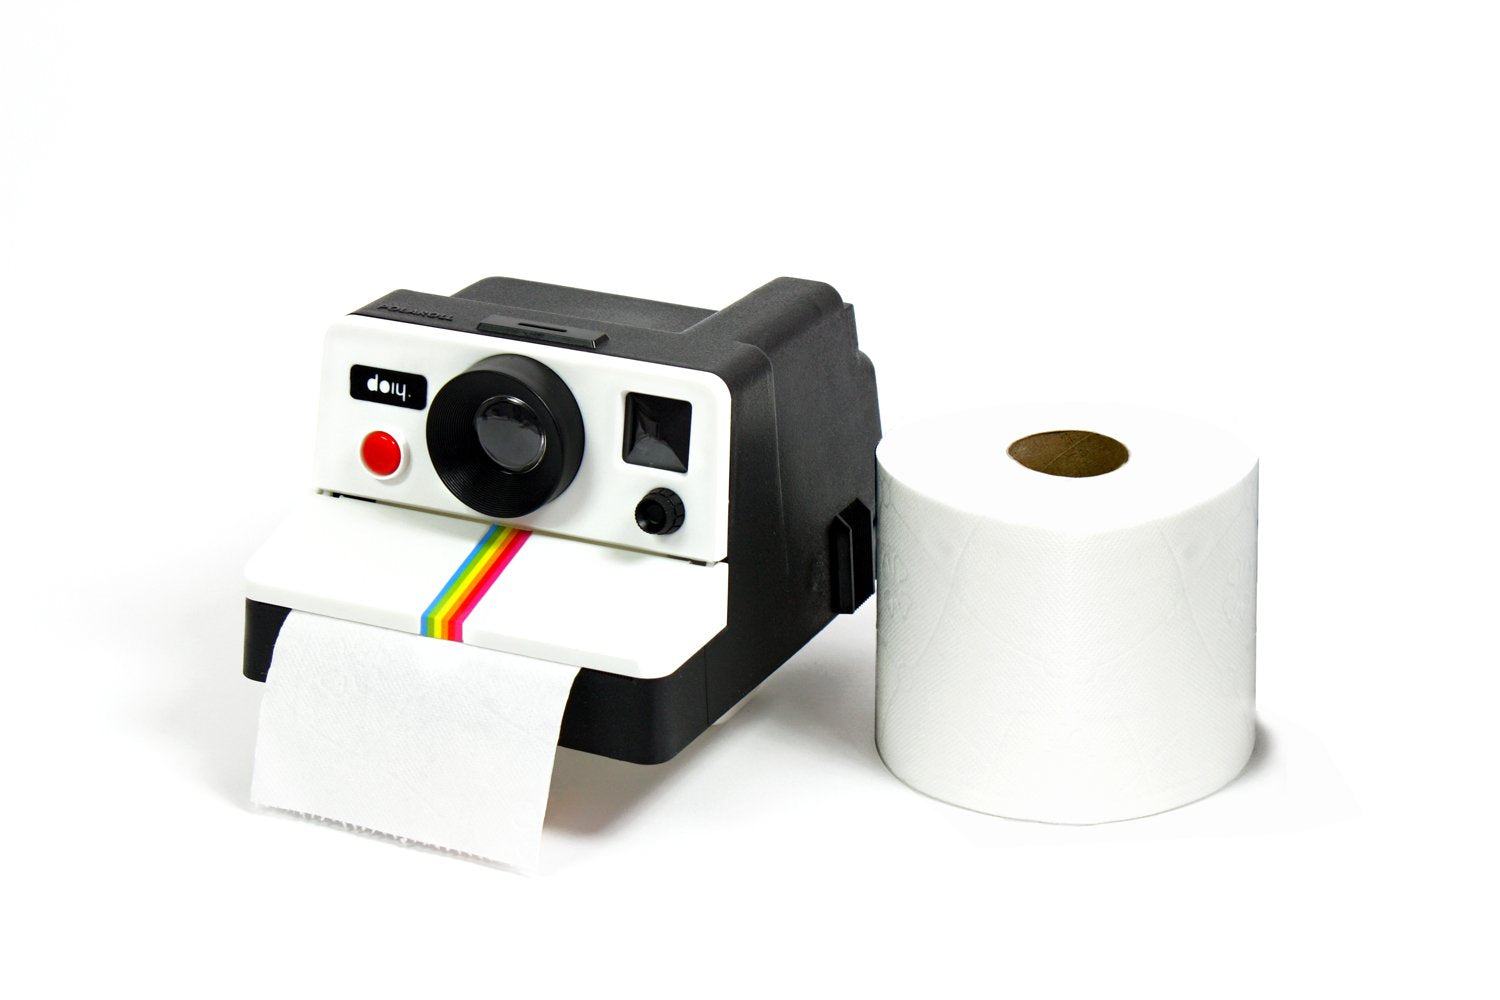 doiy chinka Polaroll Instantly at Hand 80S Style Retro Camera Toilet Paper Roll Holder - White Elephant Gift